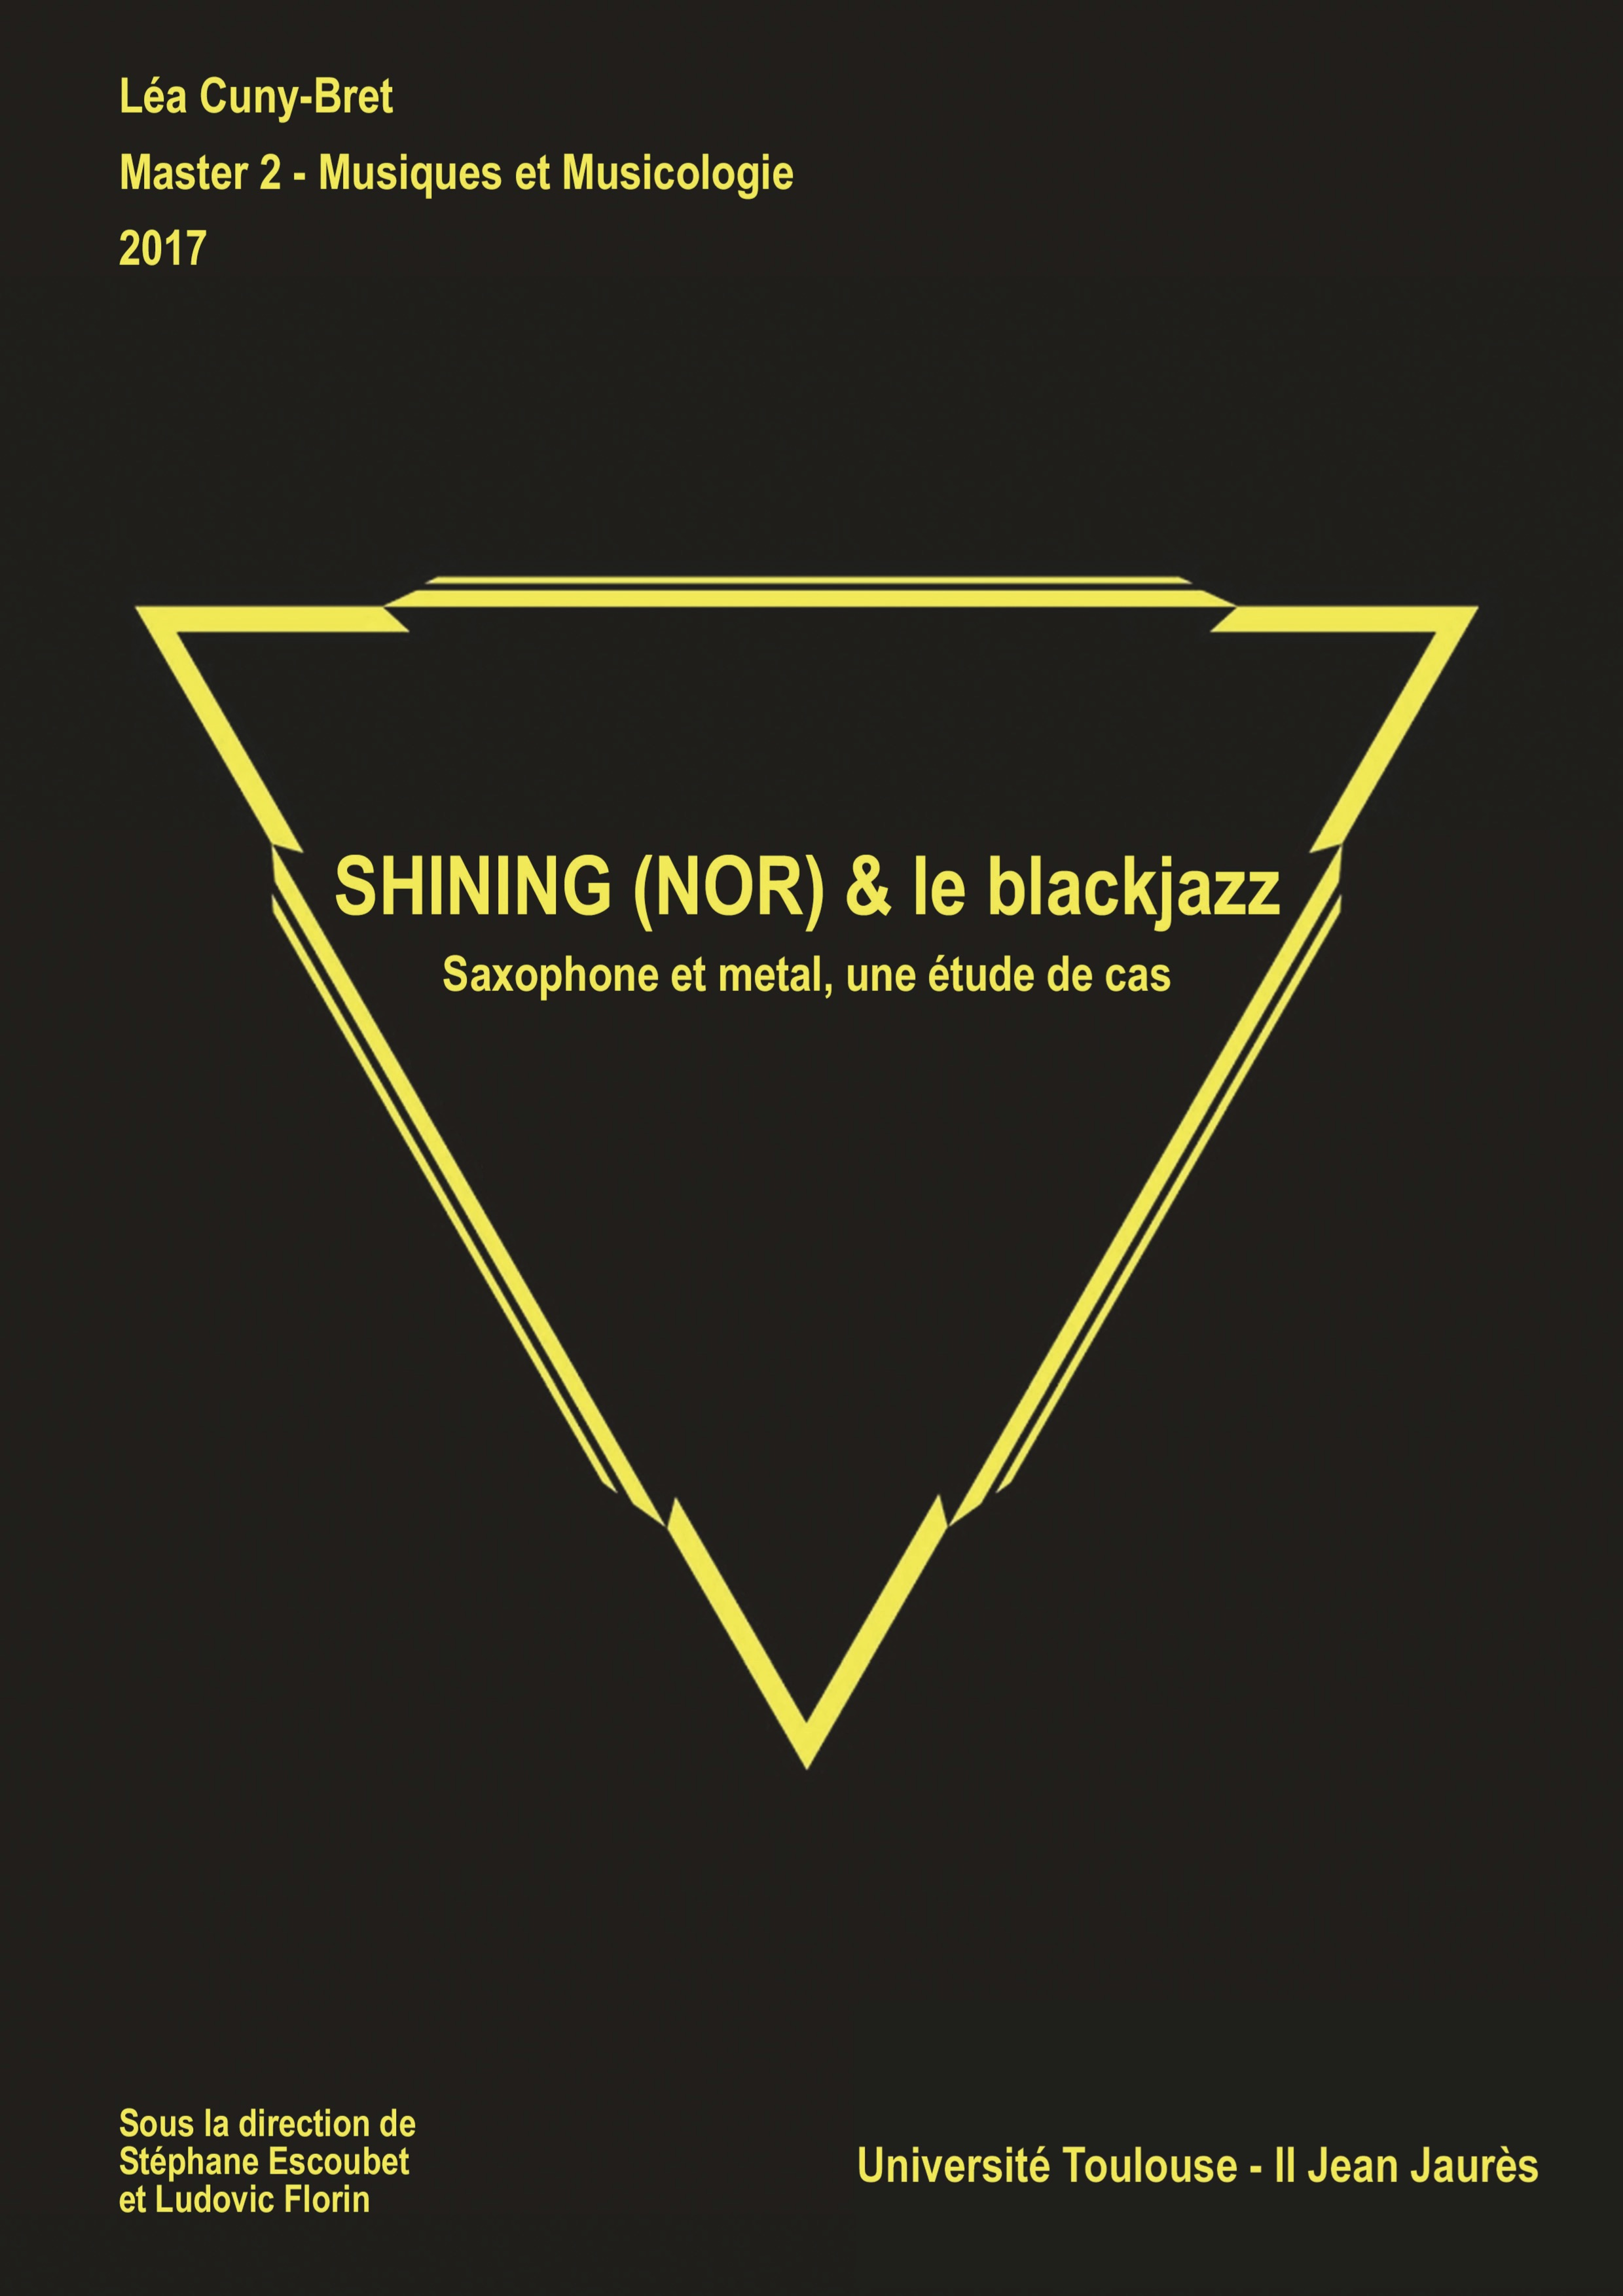 shining-le-blackjazz-saxophone-et-metal-lea-cuny-bret_Front page